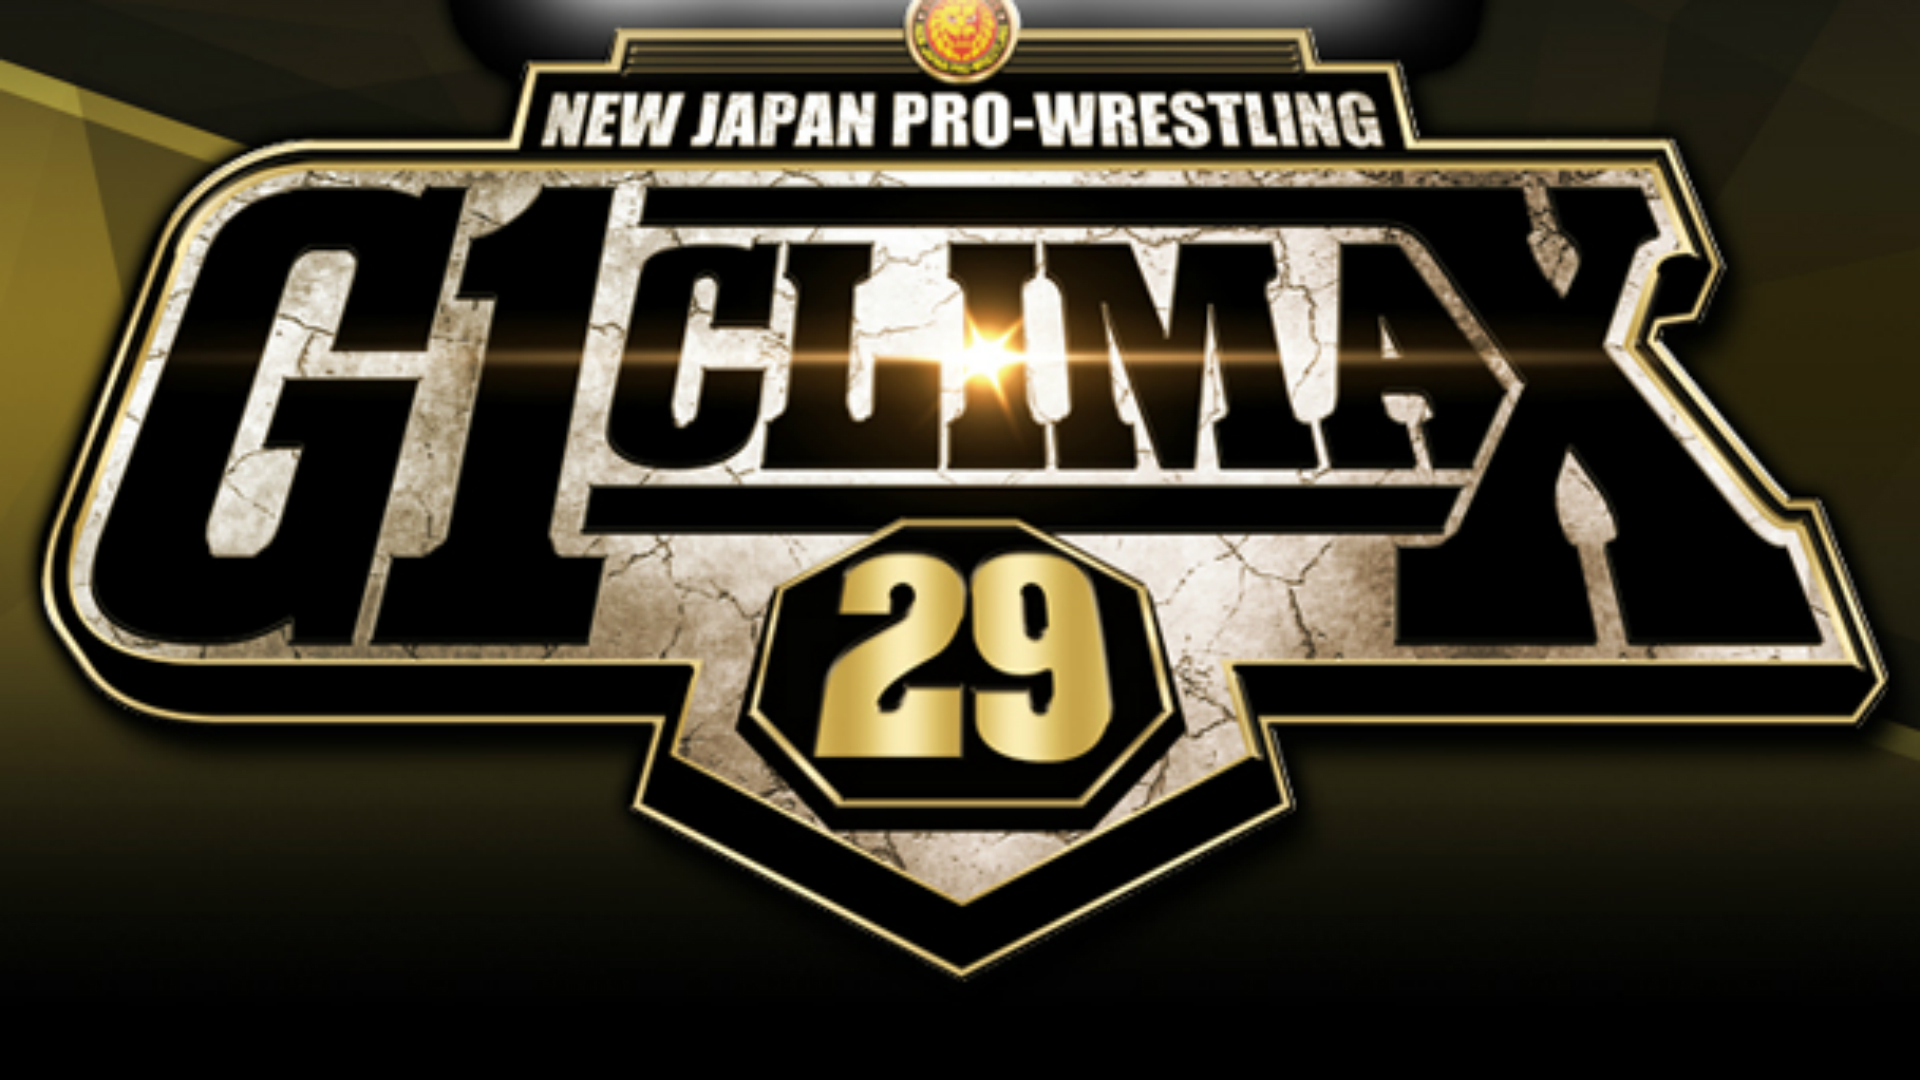 New Japan G1 Climax 29 Final match grades: Kota Ibushi and Jay White create masterpiece to end five-week tournament